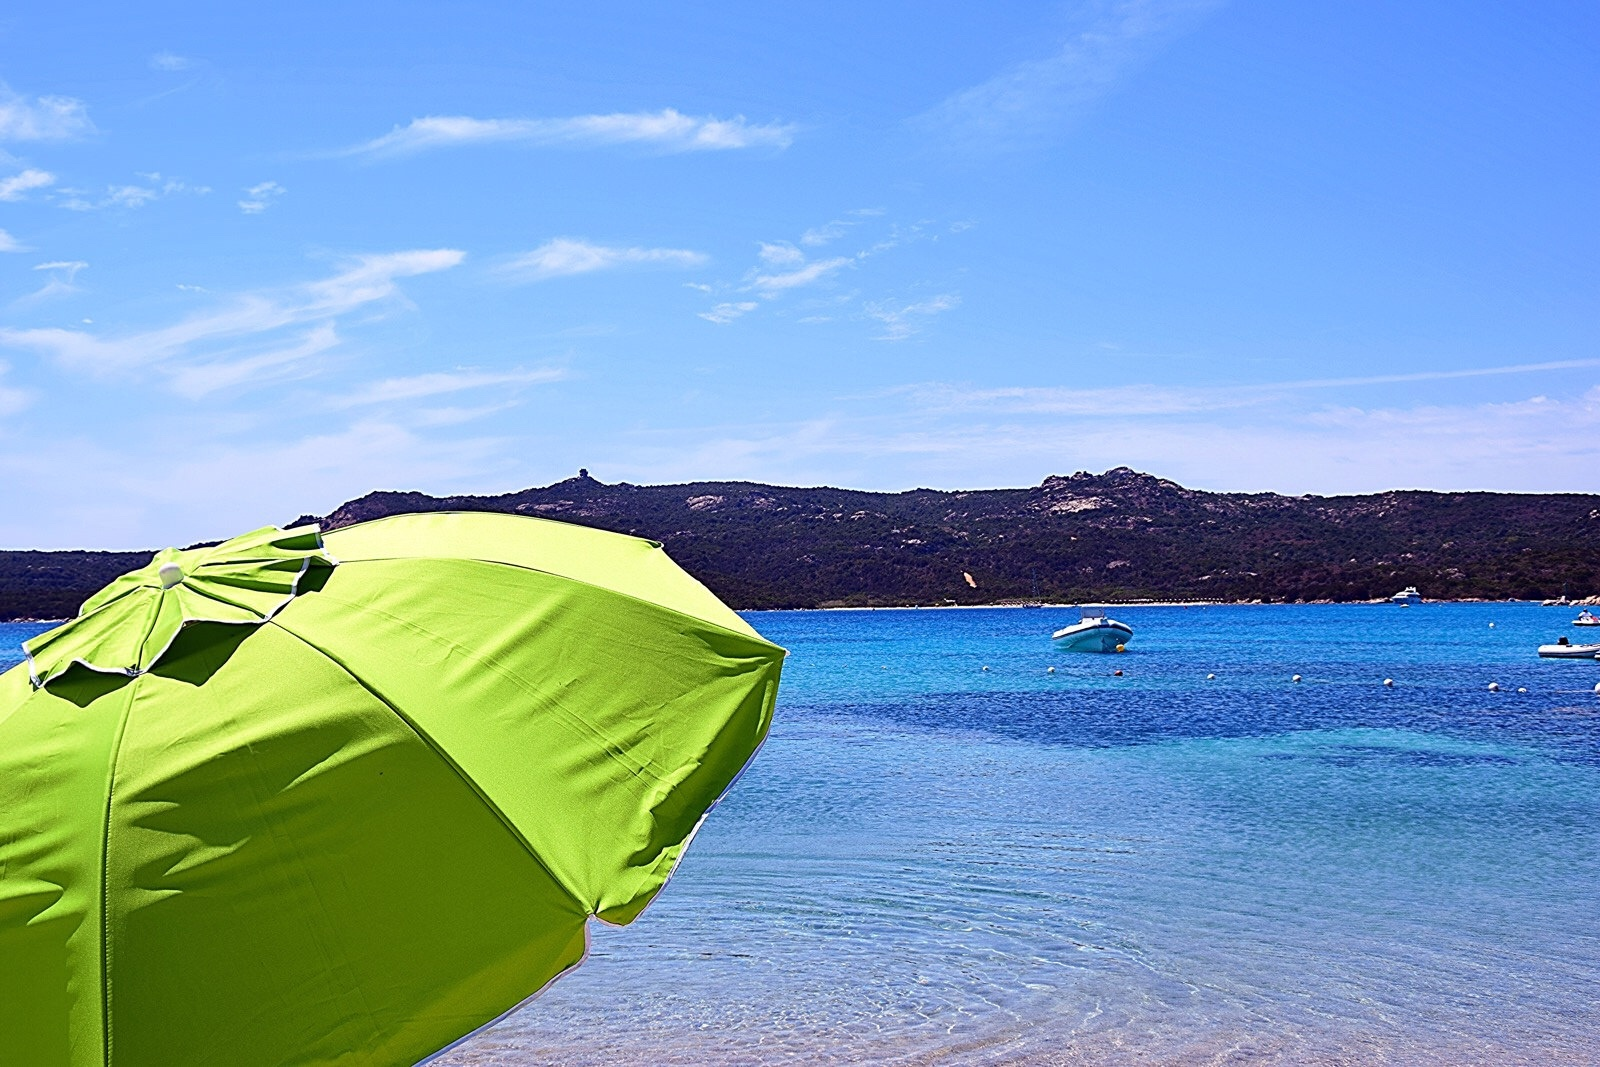 Summer on a solitary beach  by Diana